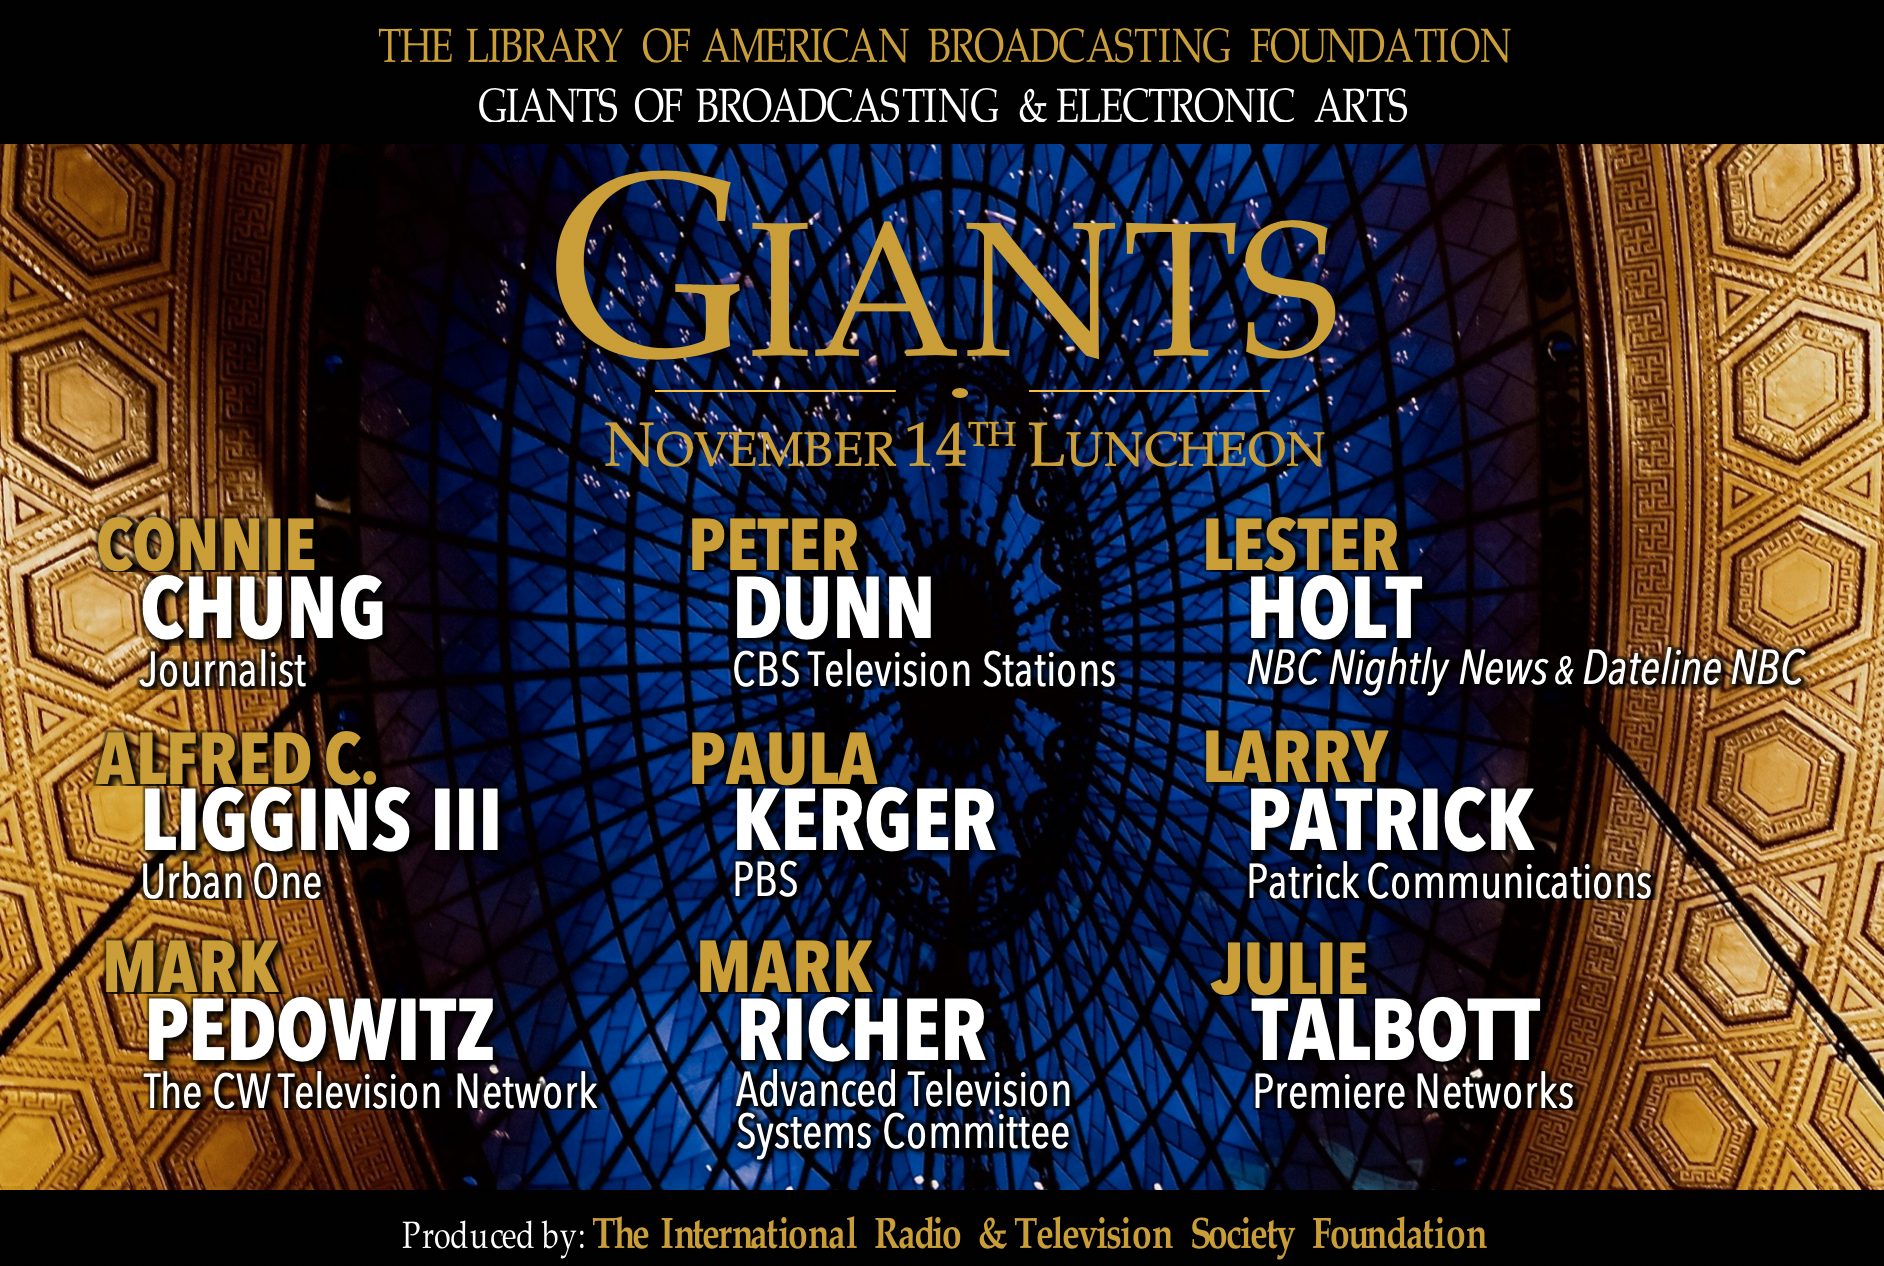 2019 LABF Giants of Broadcasting luncheon banner (title, date, & honorees listed)